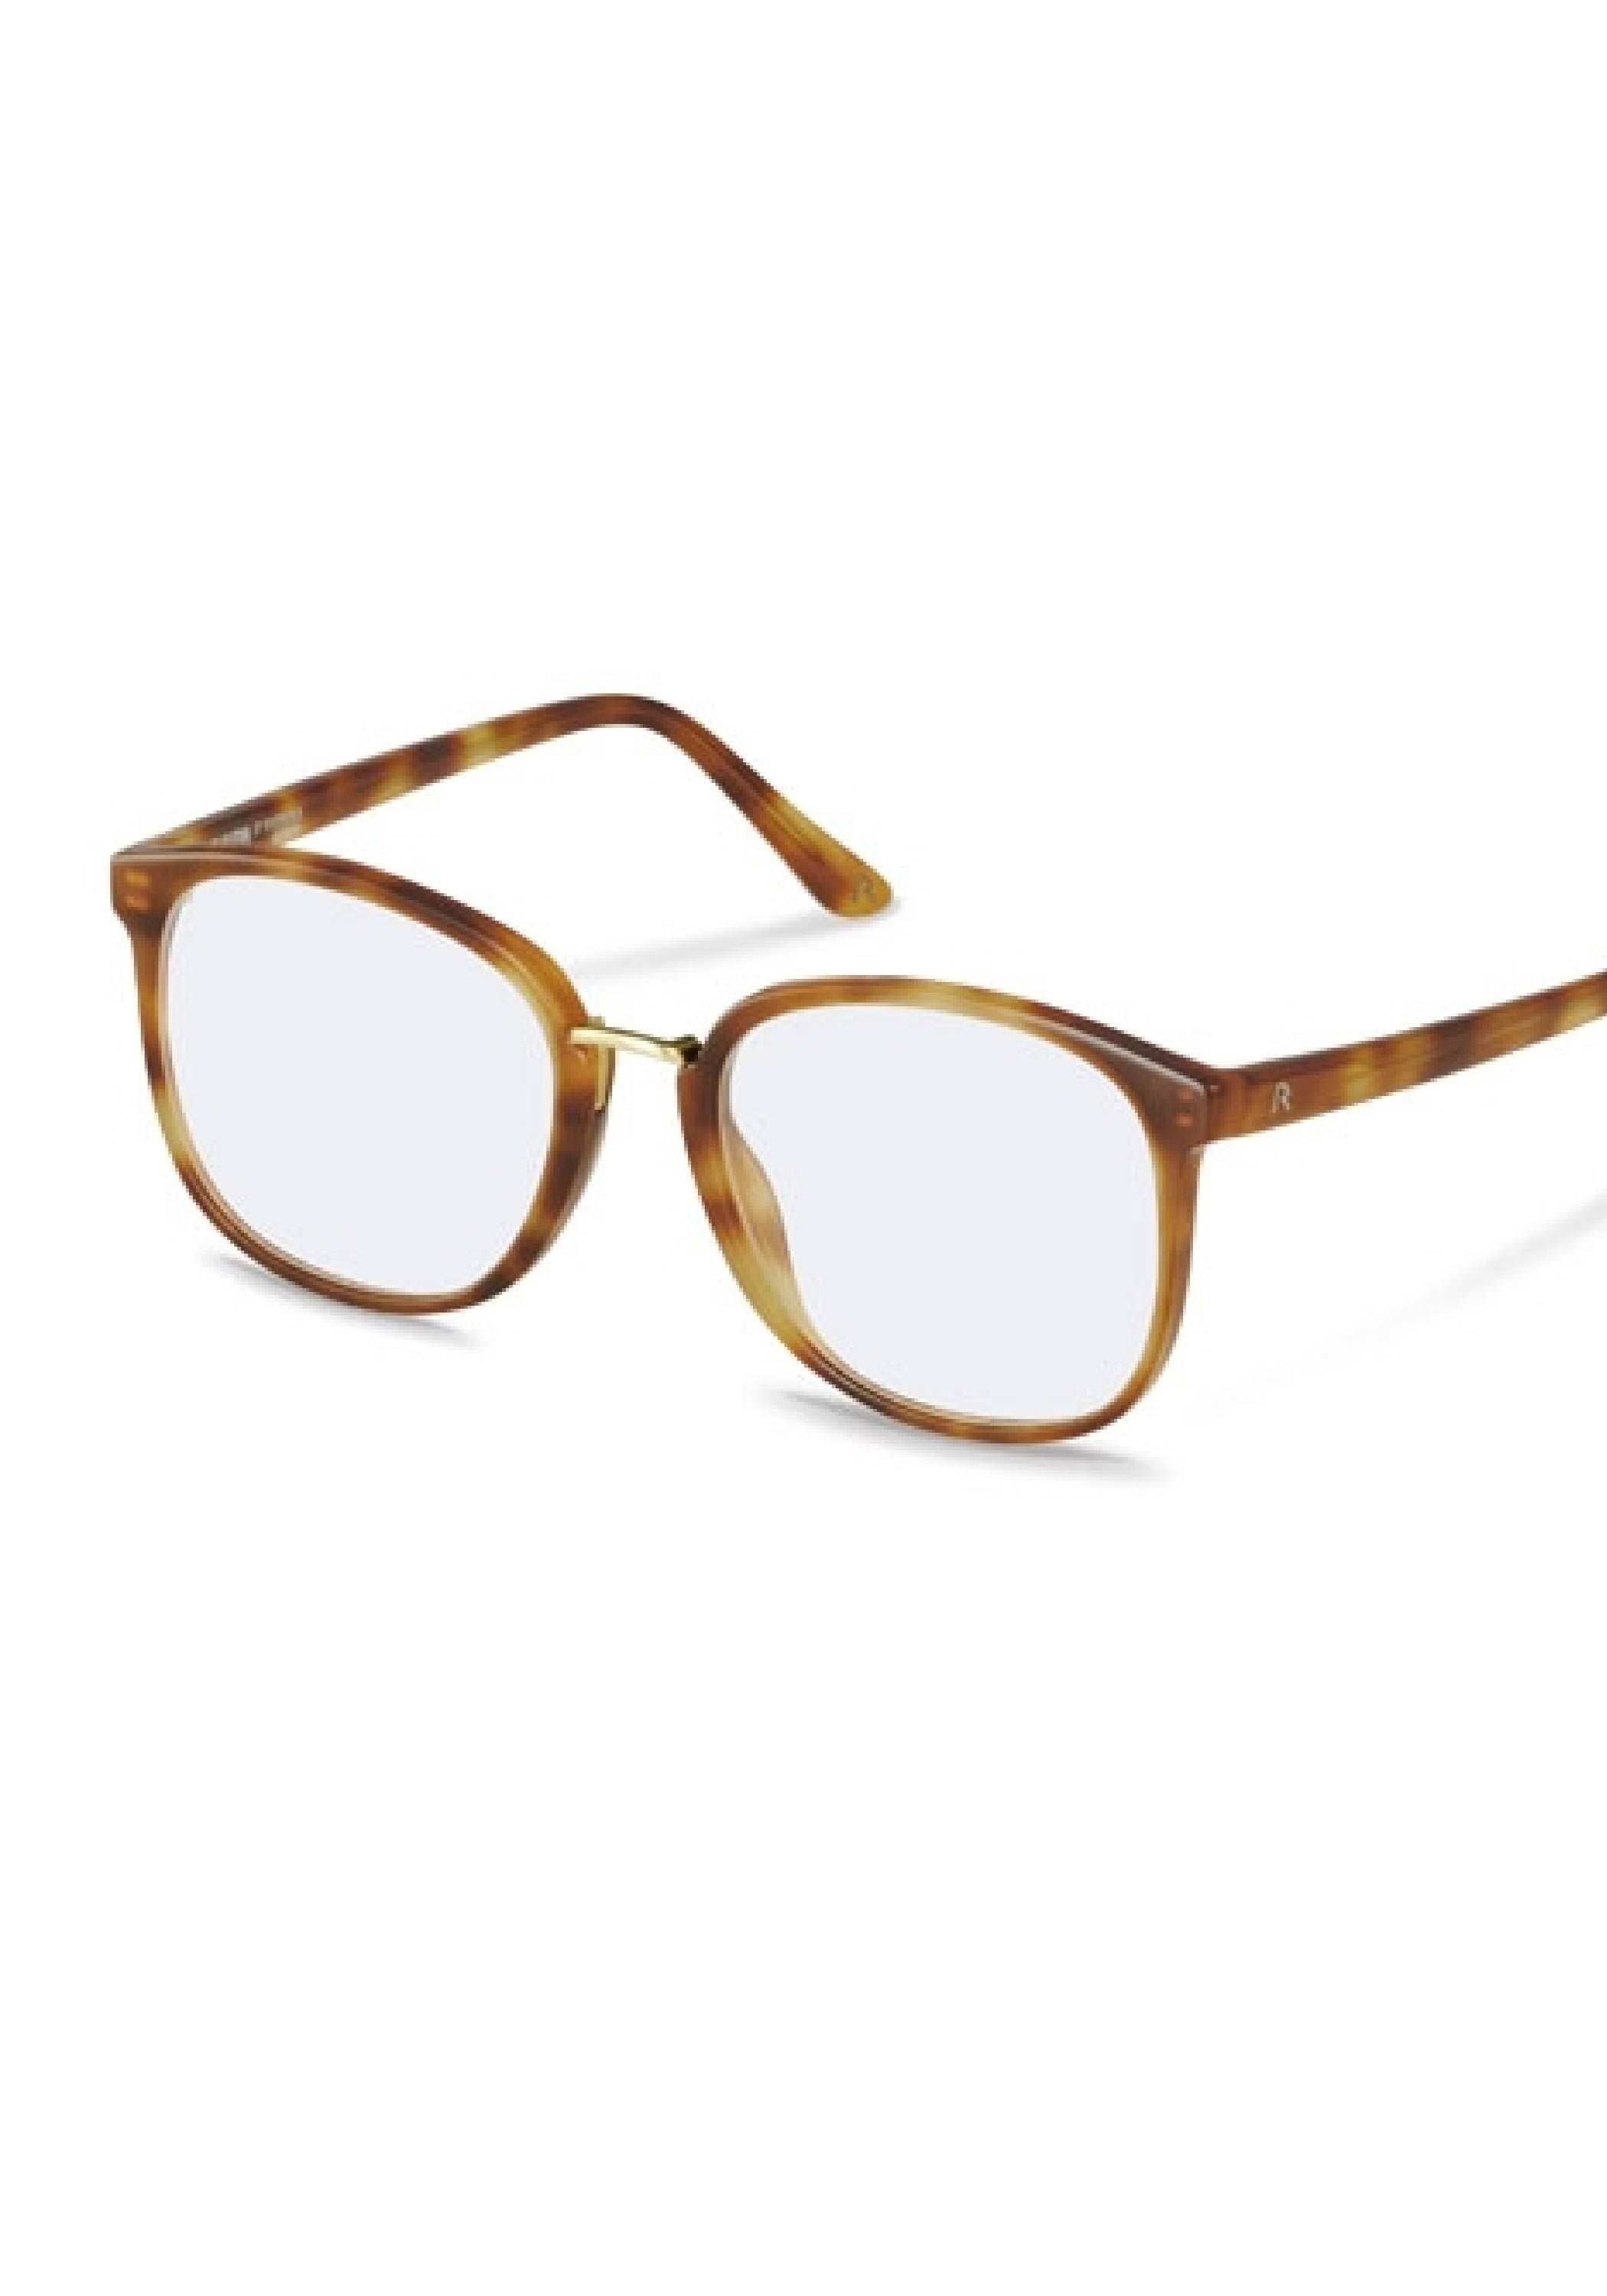 Simple in design, but high in style, these Rodenstock glasses will ...